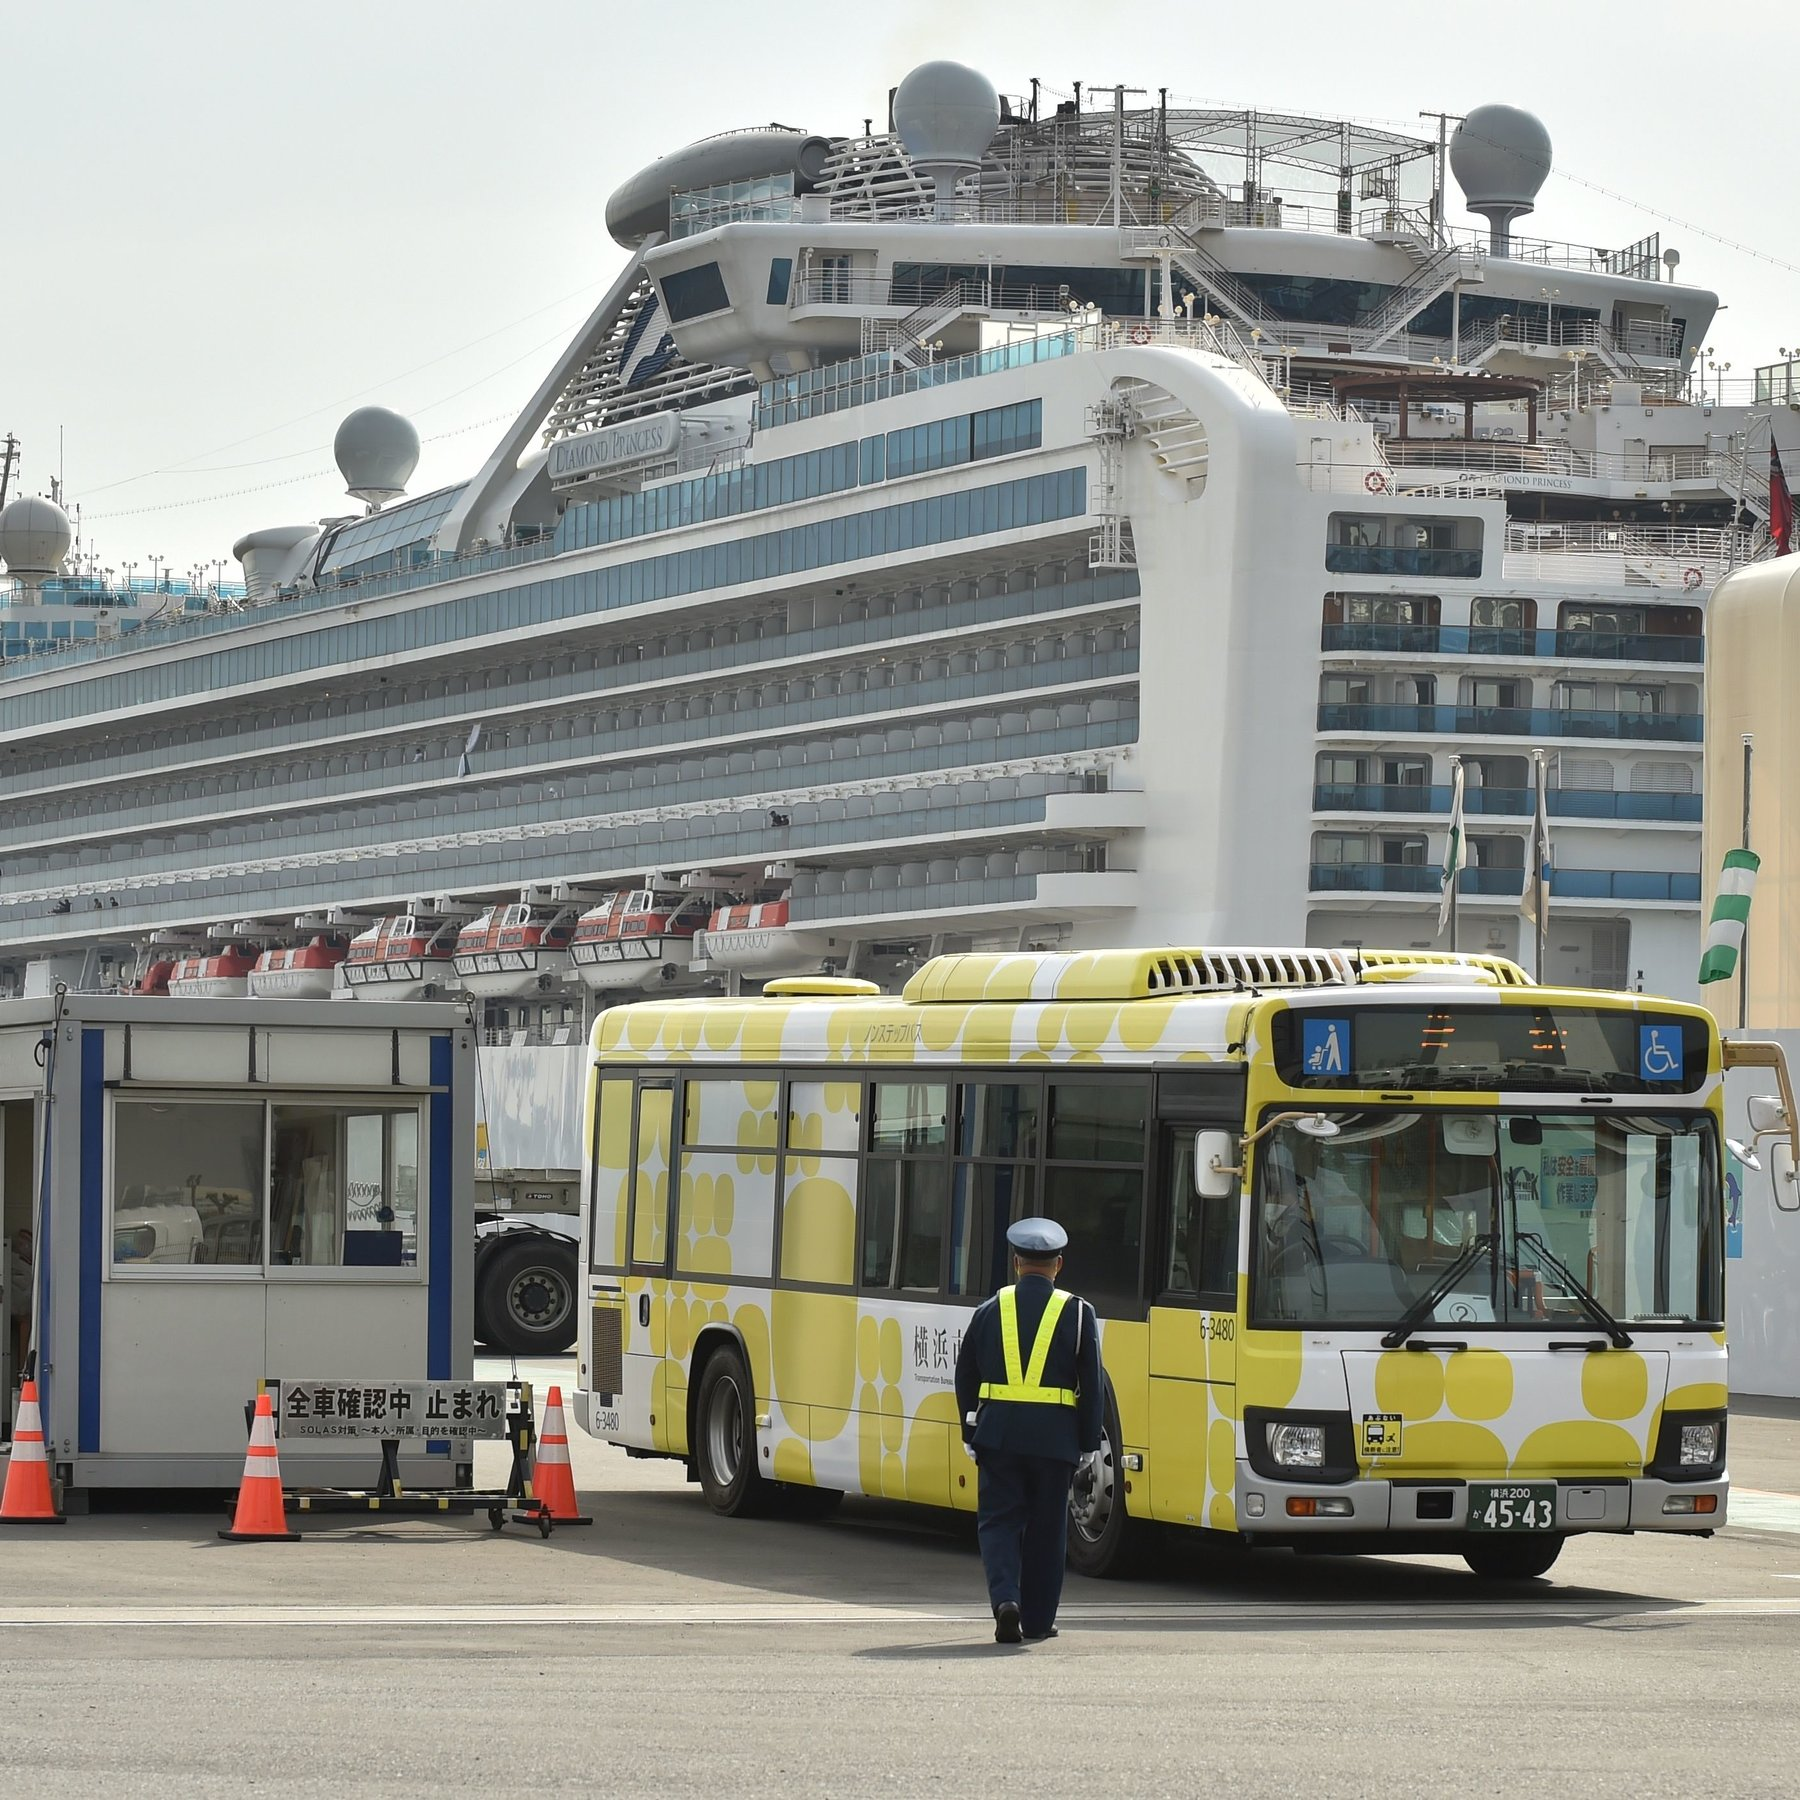 Japan Reports 2 Deaths Among Cruise Ship Passengers - The New York ...